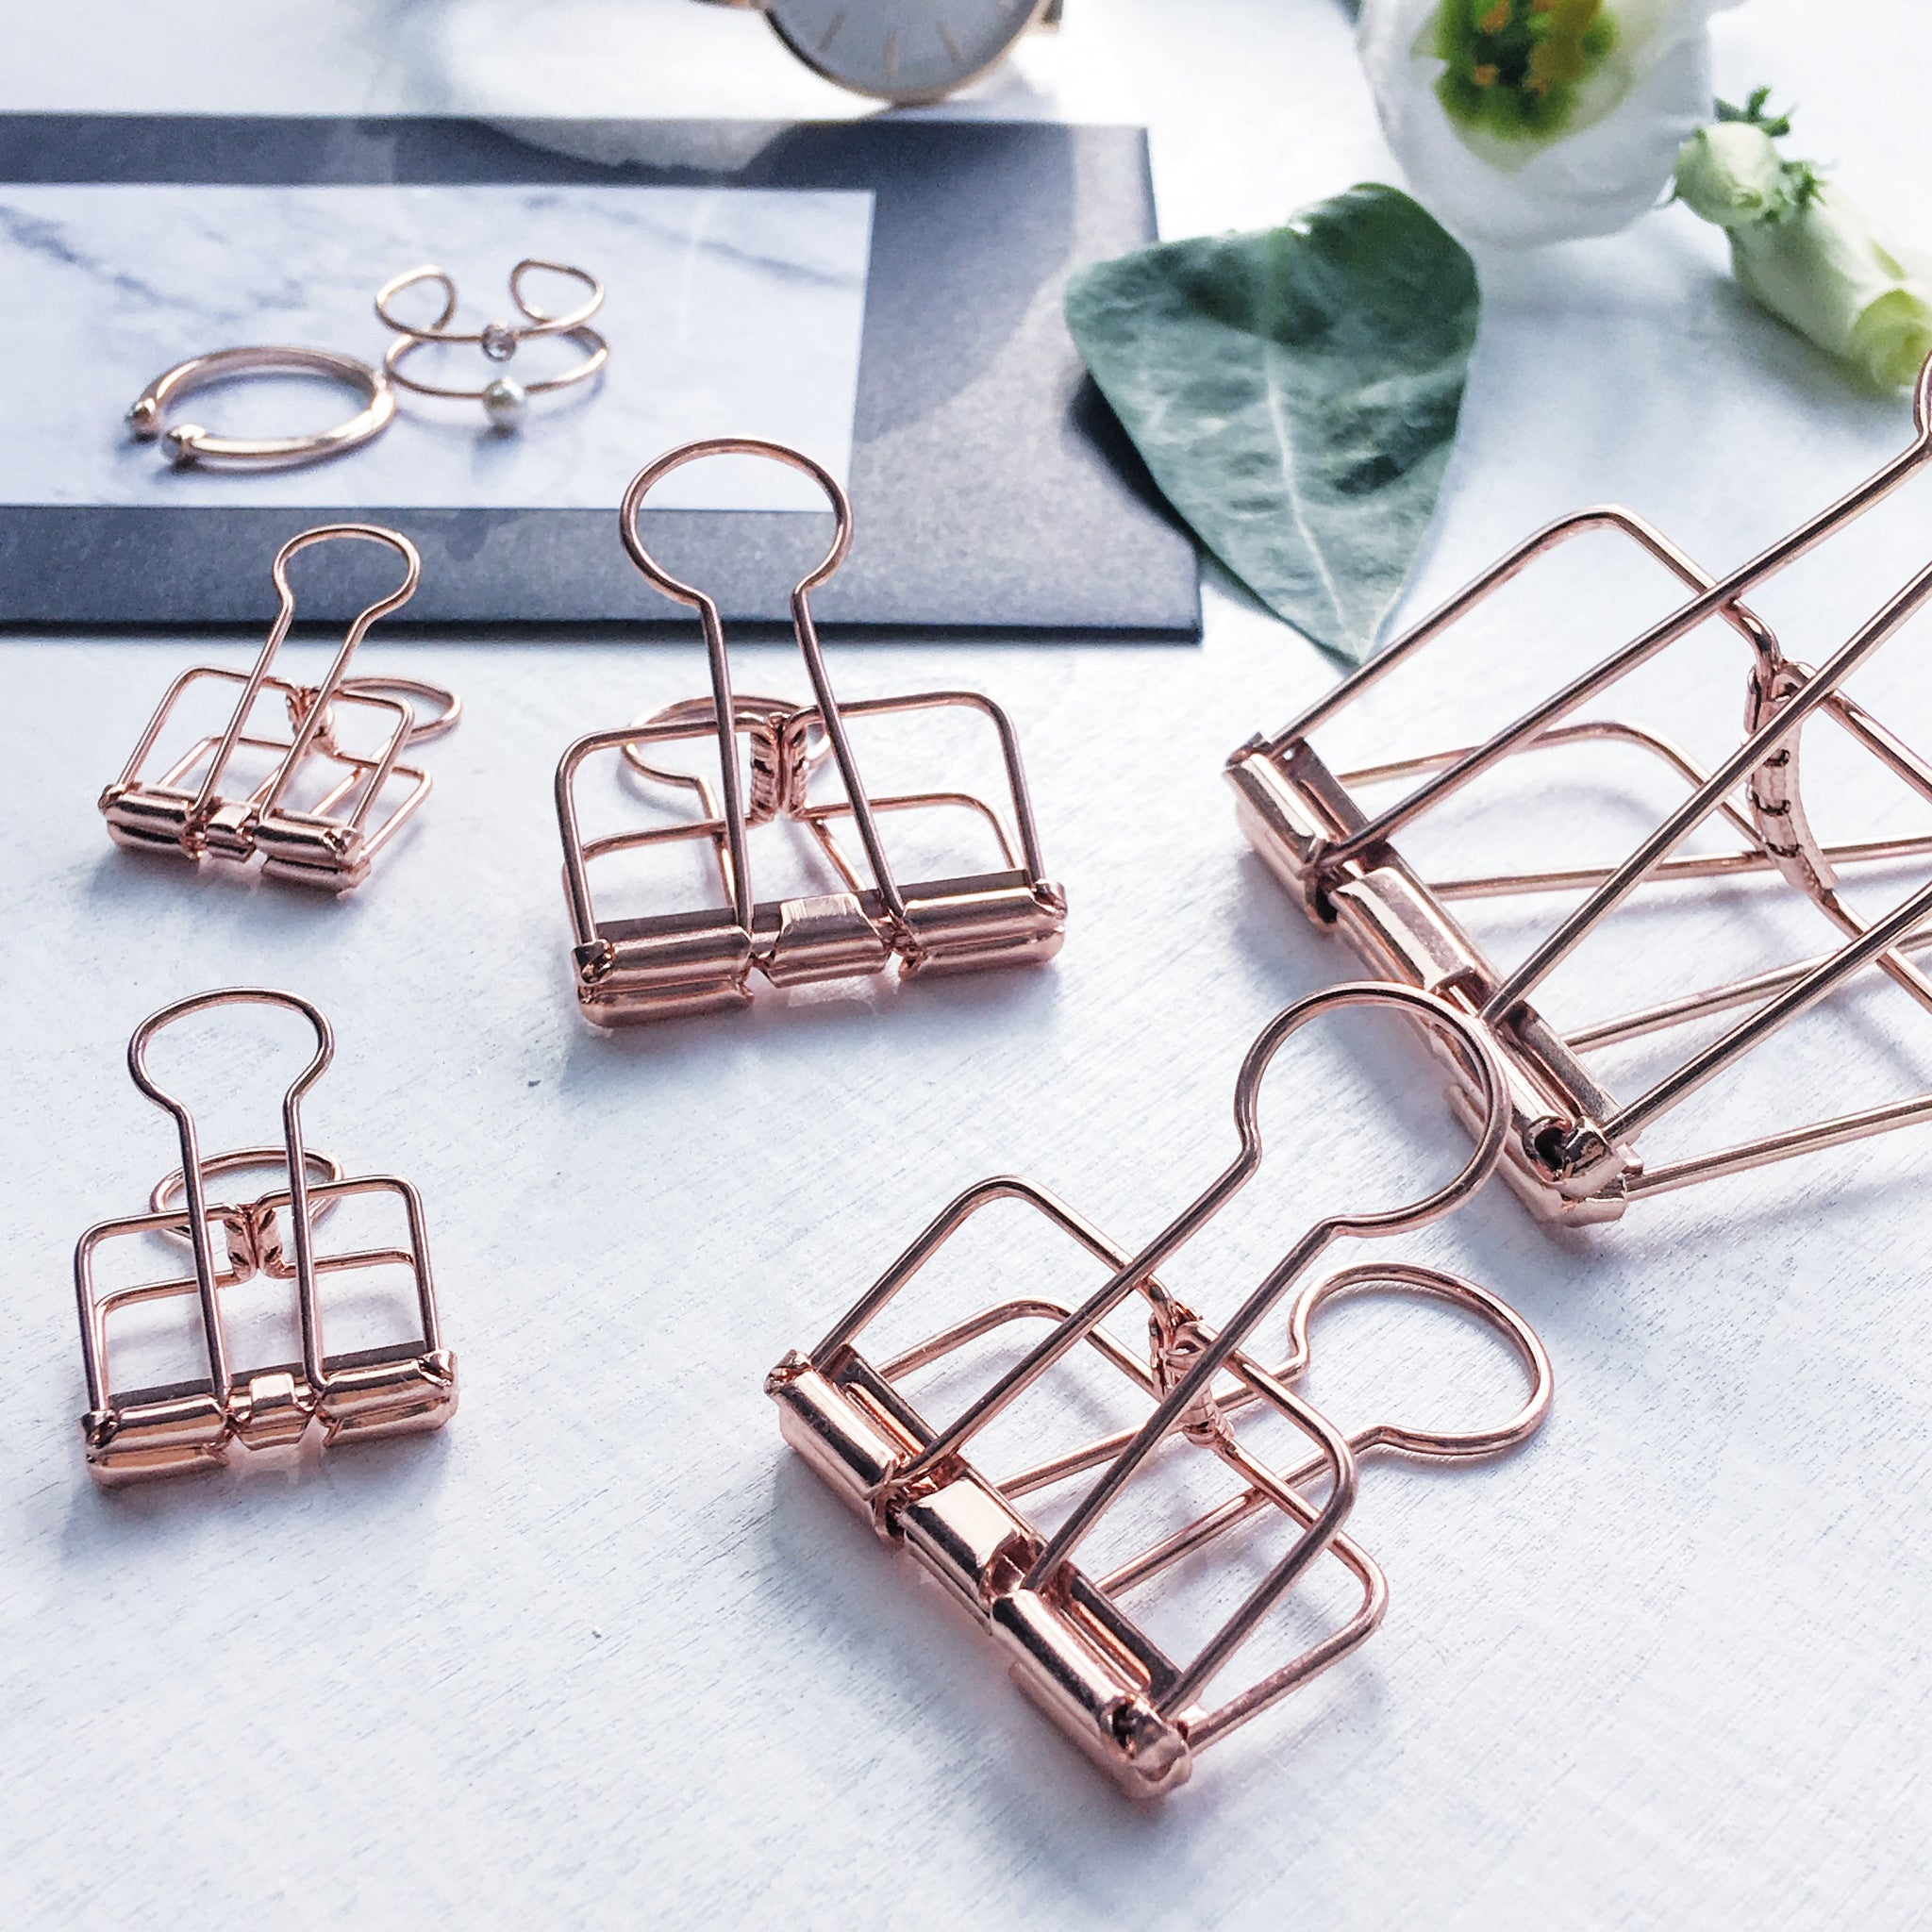 ELLA ICONIC | Skeleton Binder Clips | Rose Gold Binder Clips